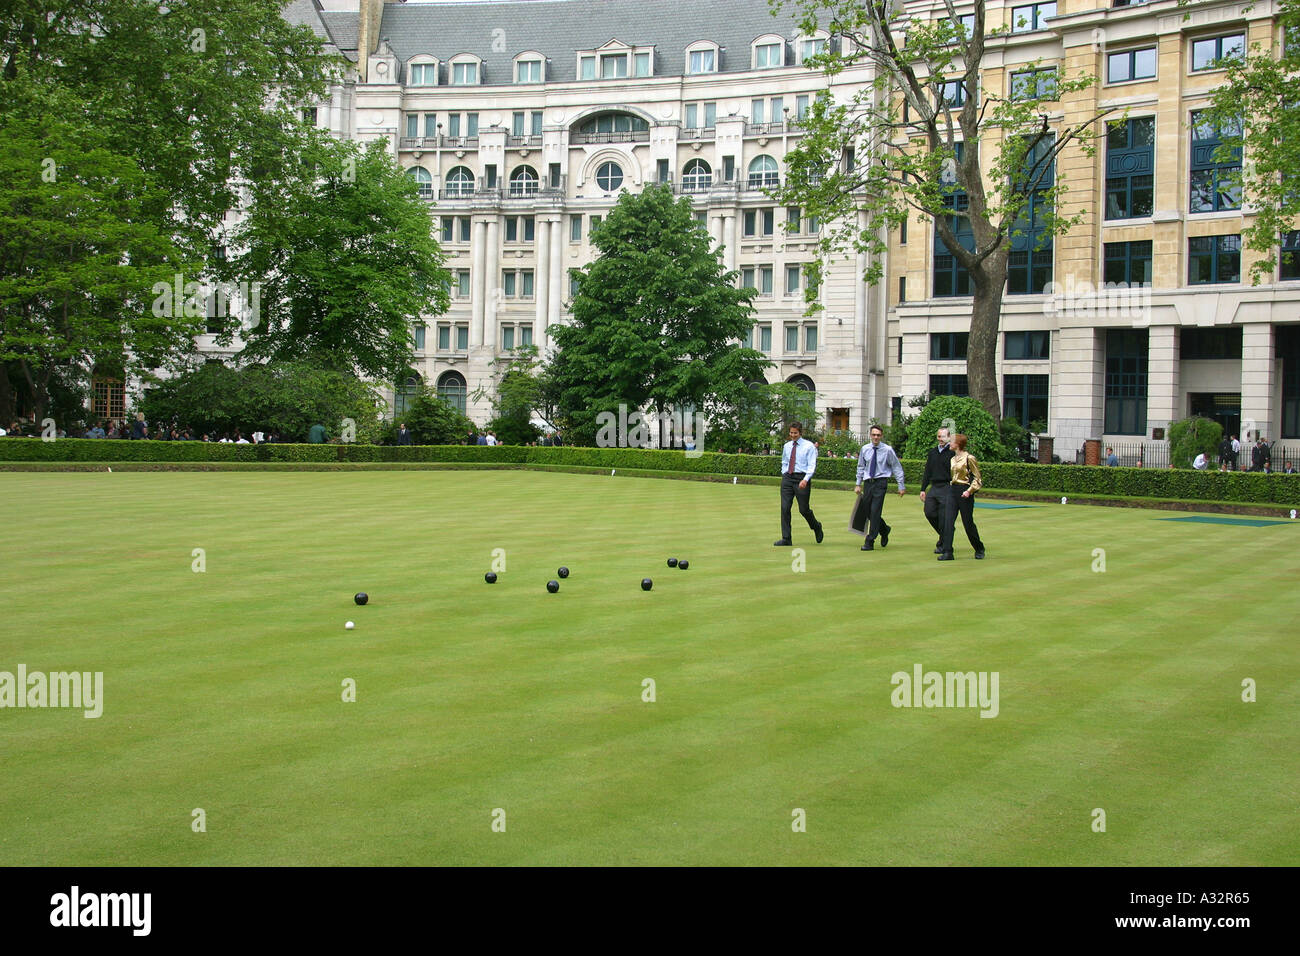 people play bowls on the grass surrounded by offices at finsbury circus - Stock Image